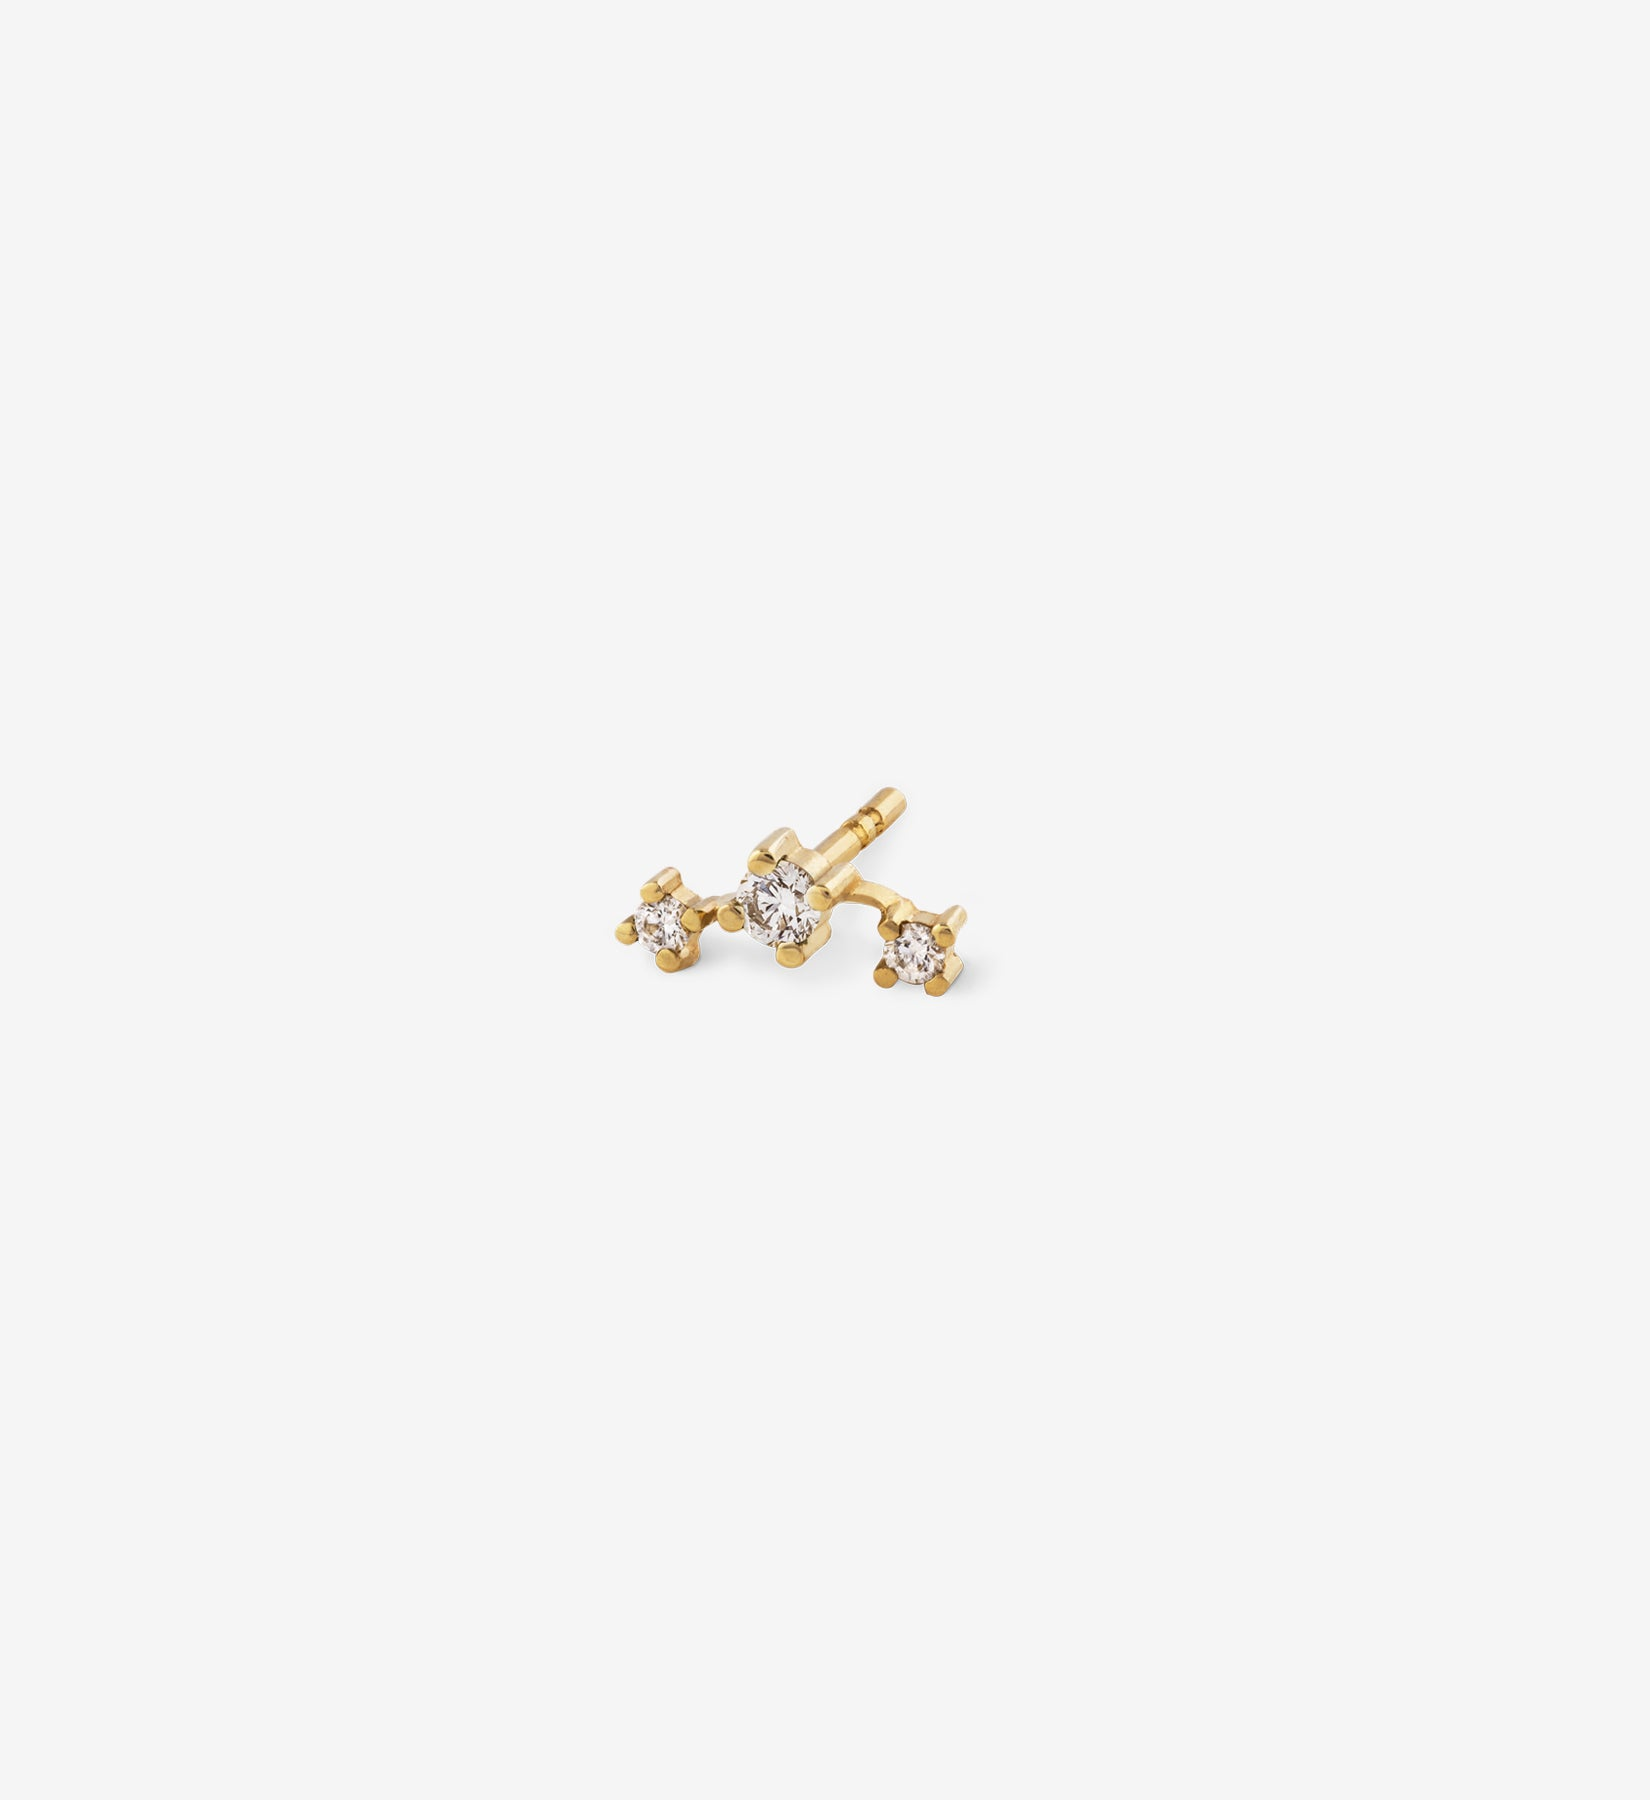 Trio Diamond Stud 0.09 - Single